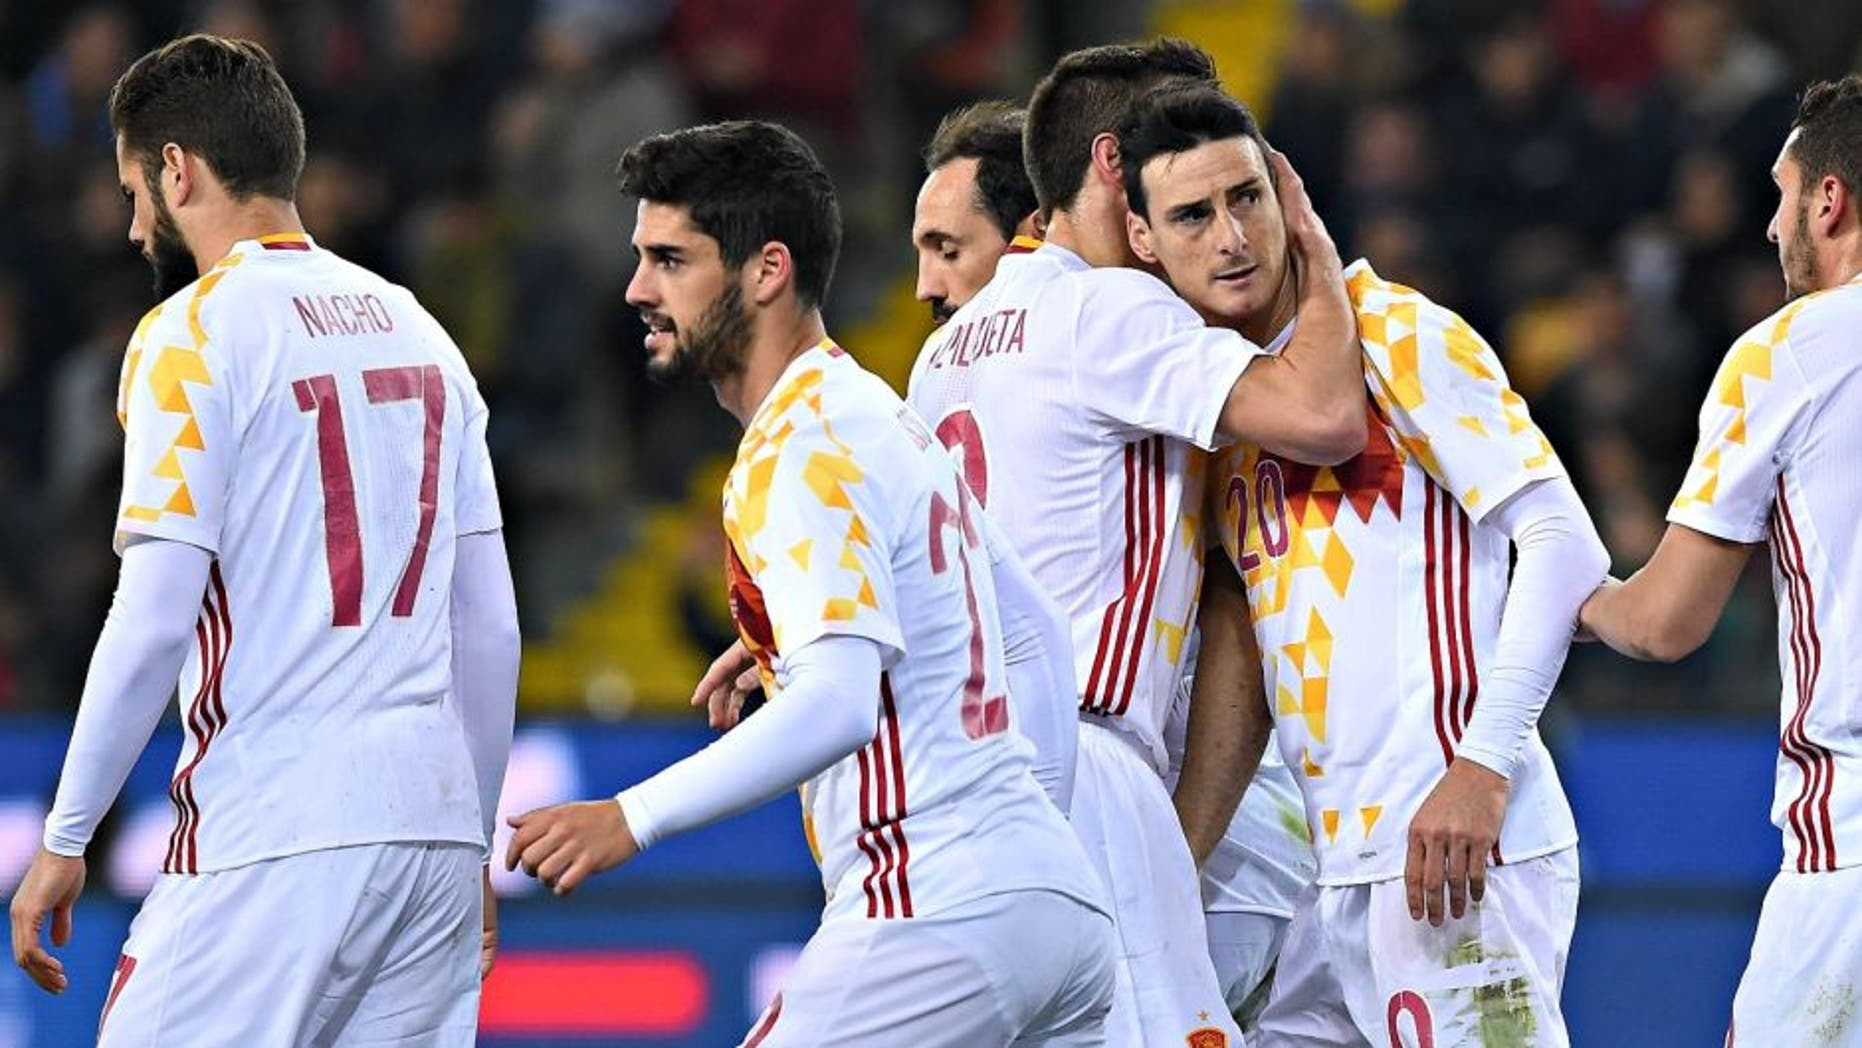 during the international friendly match between Italy and Spain at Stadio Friuli on March 24, 2016 in Udine, Italy.